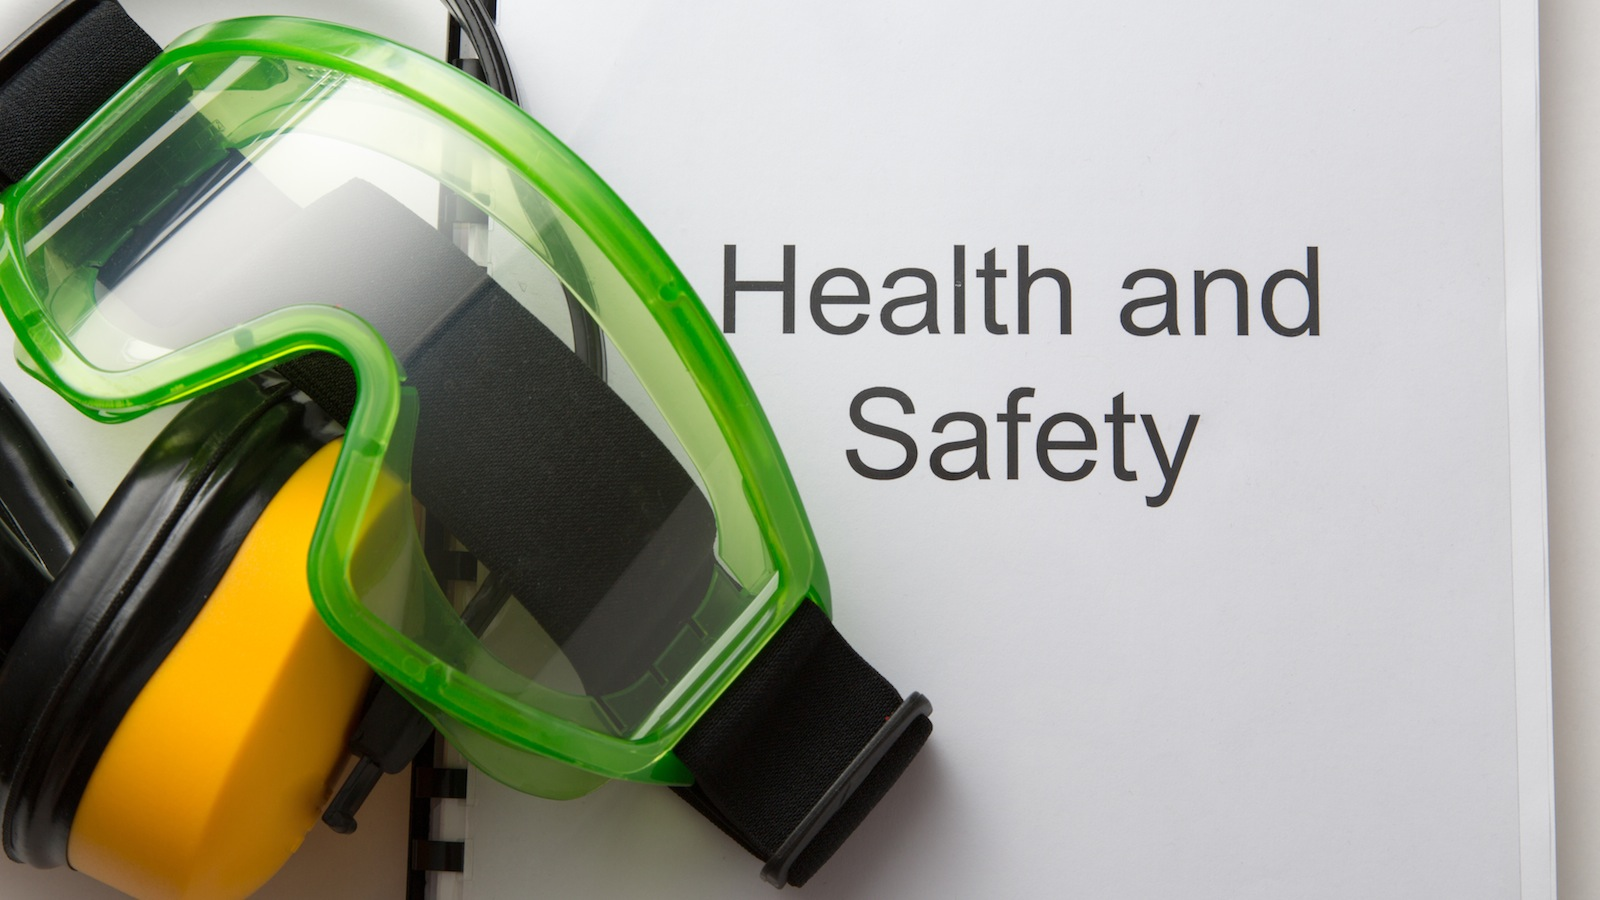 employee safety and health Find and compare ehs management software  everything you need to manage health & safety, sustainability,  safety software for managing employee safety.